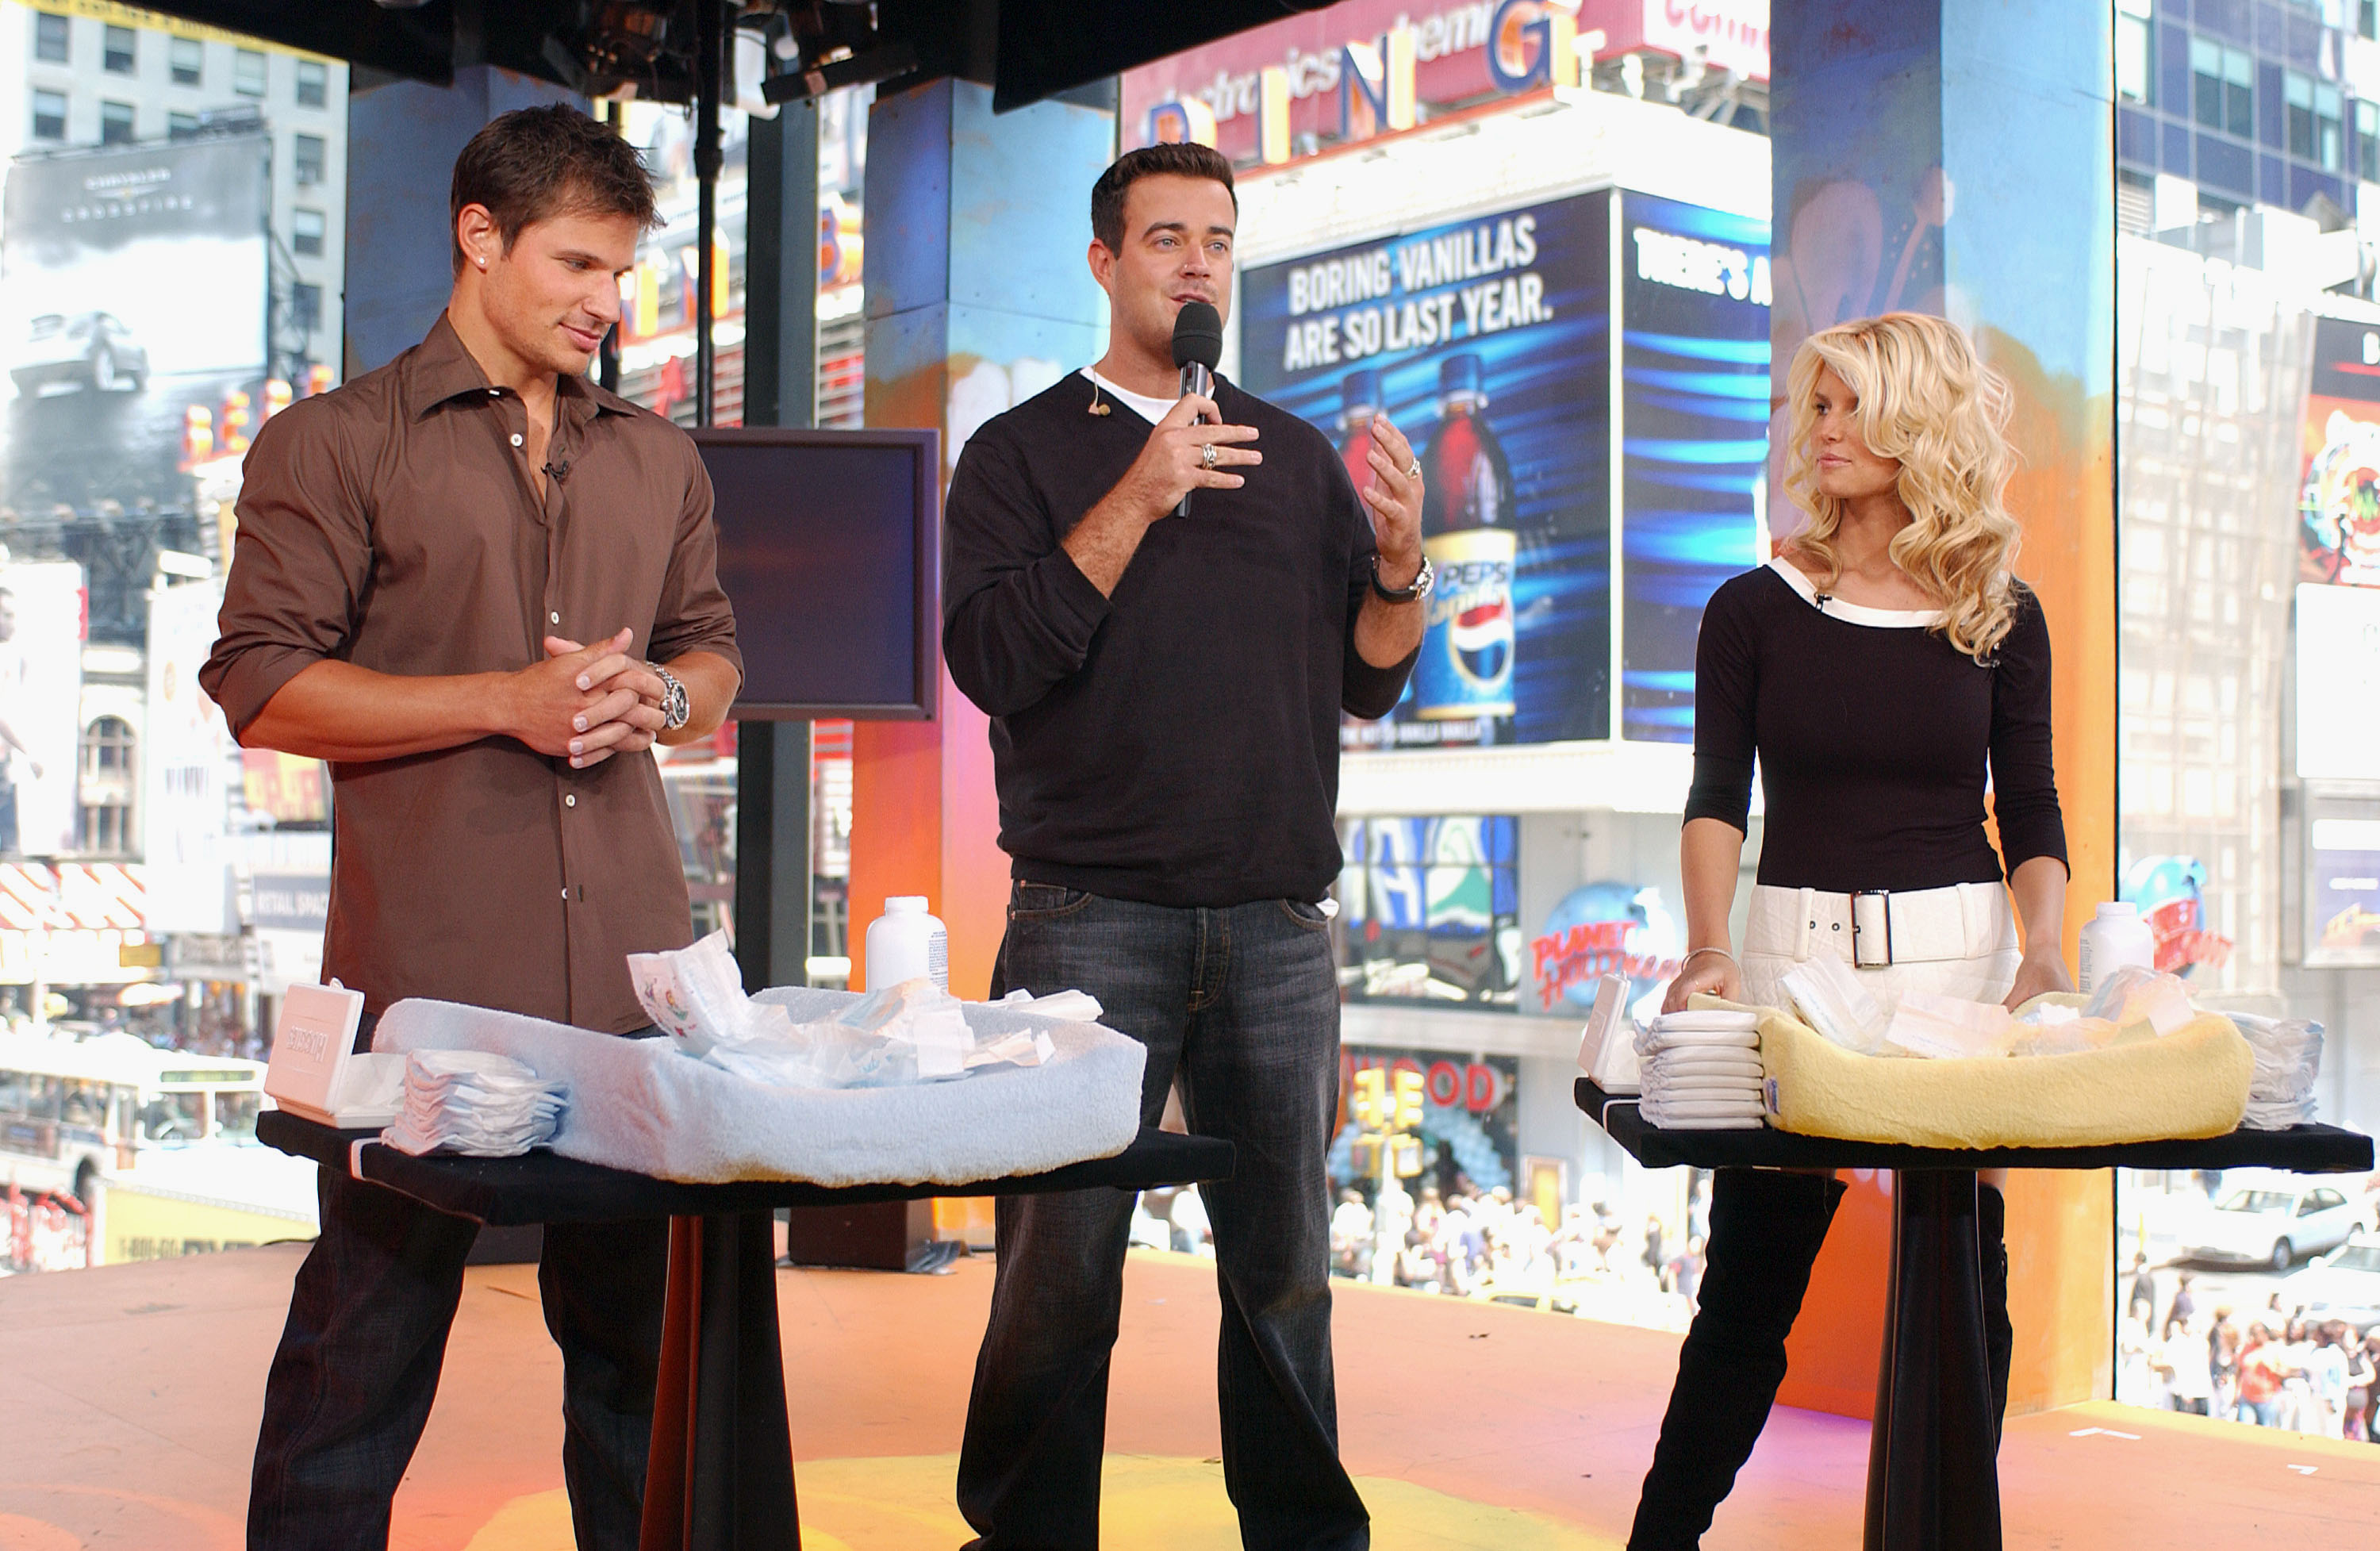 The One Trl Moment No 90s Kid Should Ever Forget